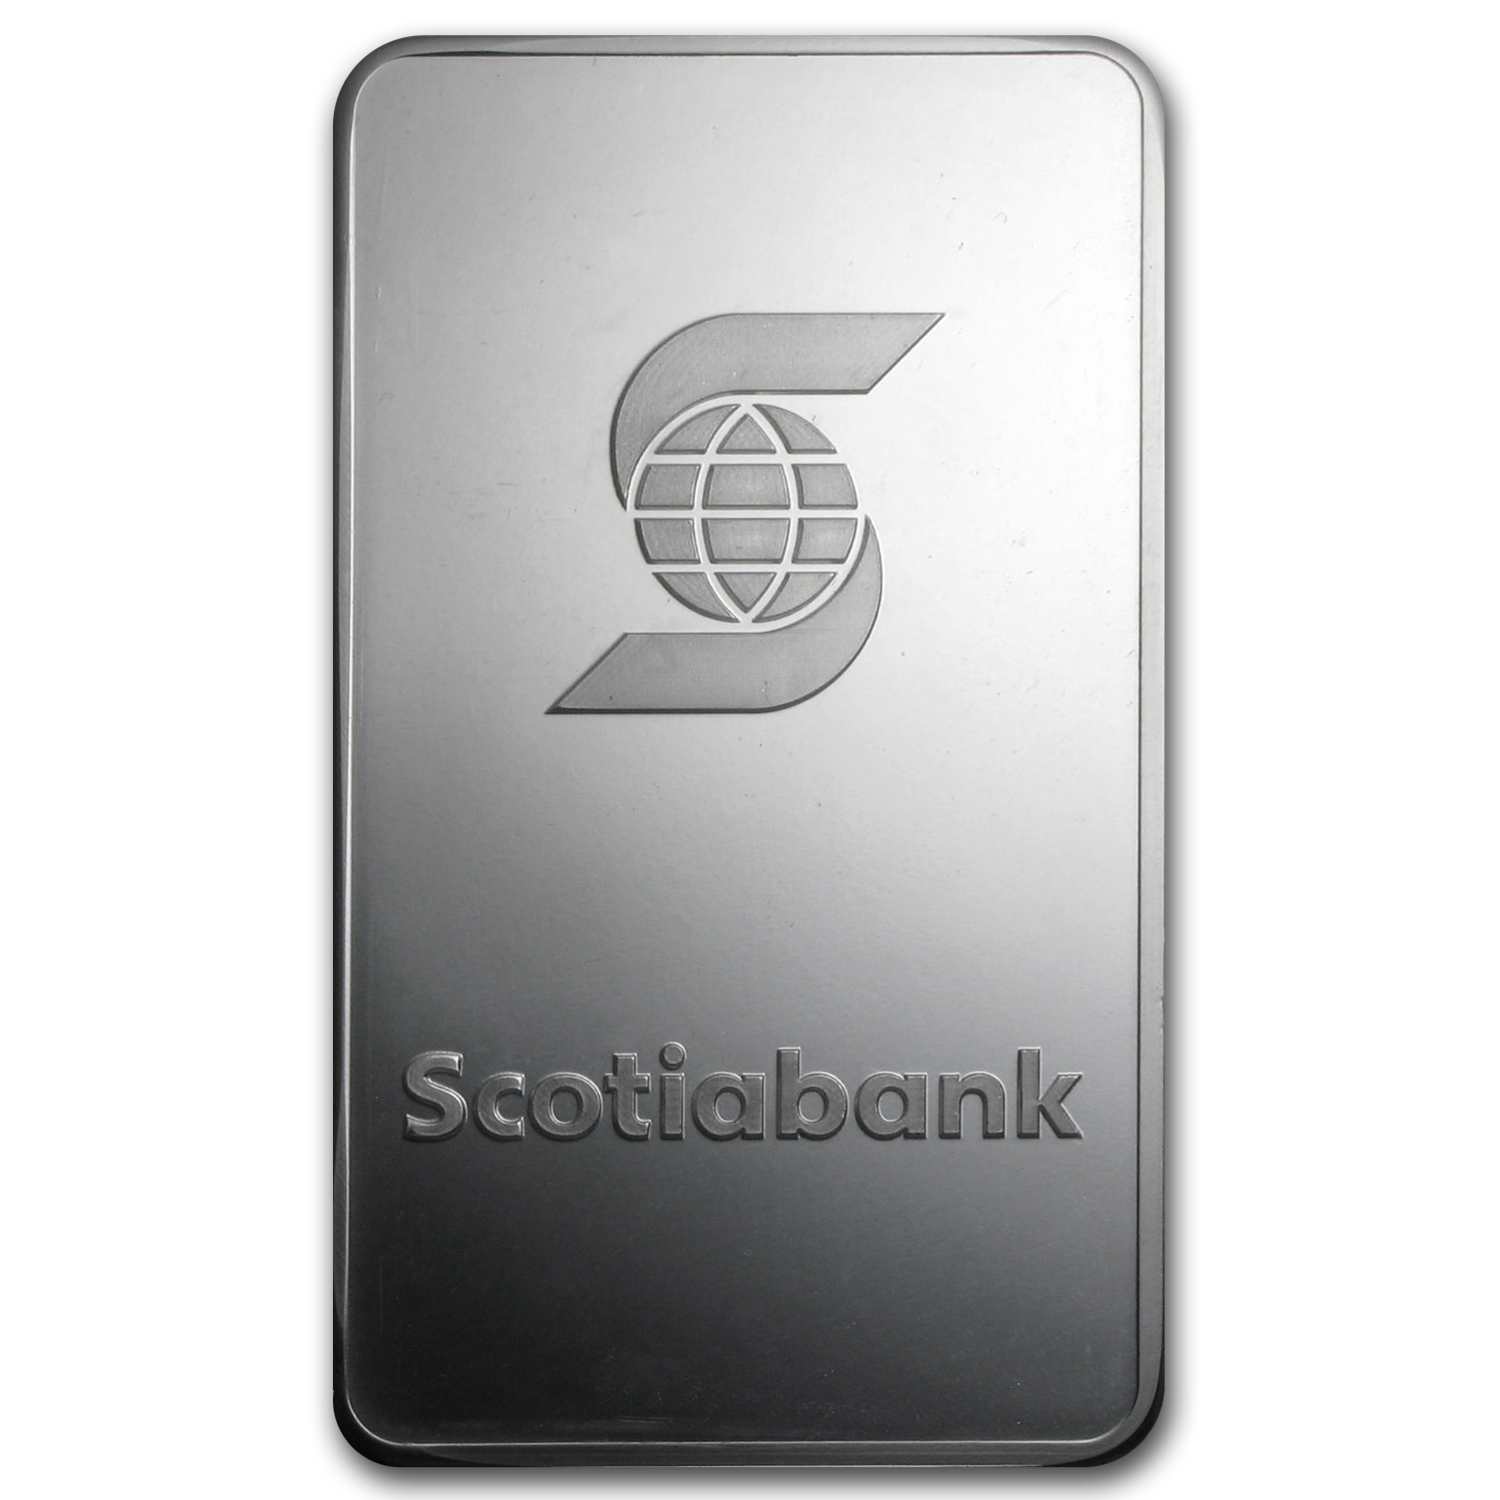 10 oz Silver Bars - Scotiabank